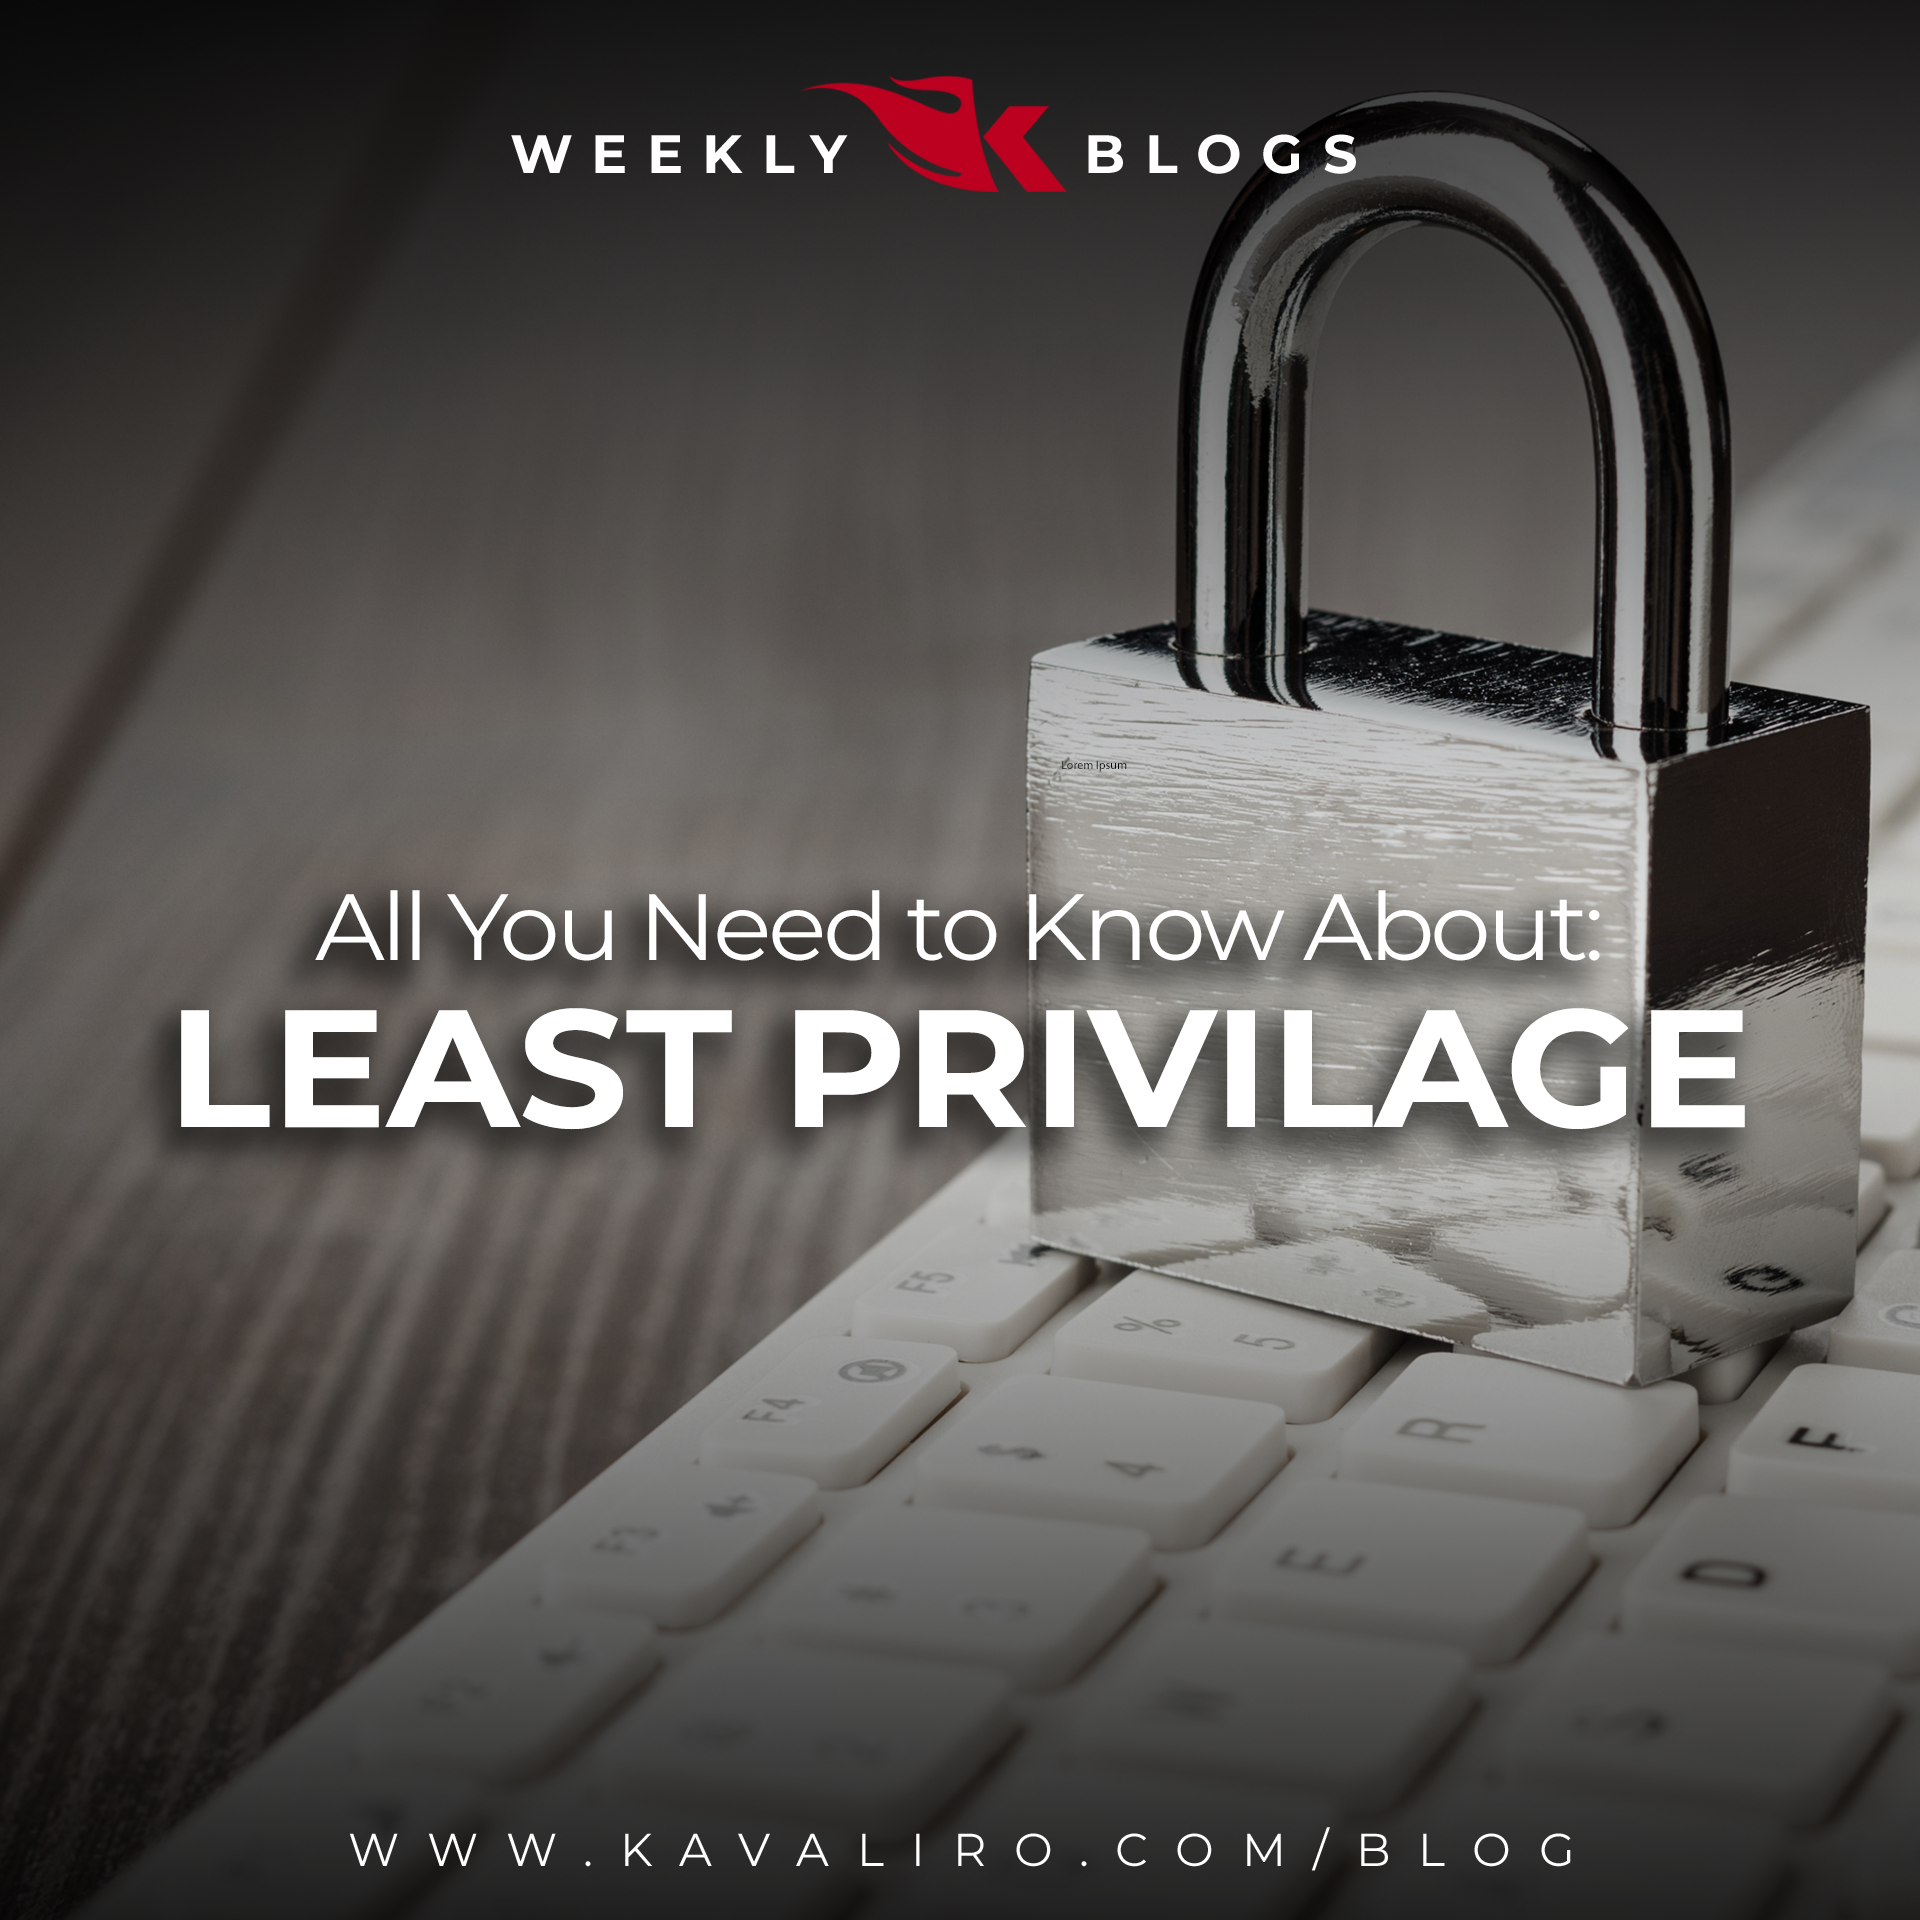 All You Need to Know About 'Least Privilege'